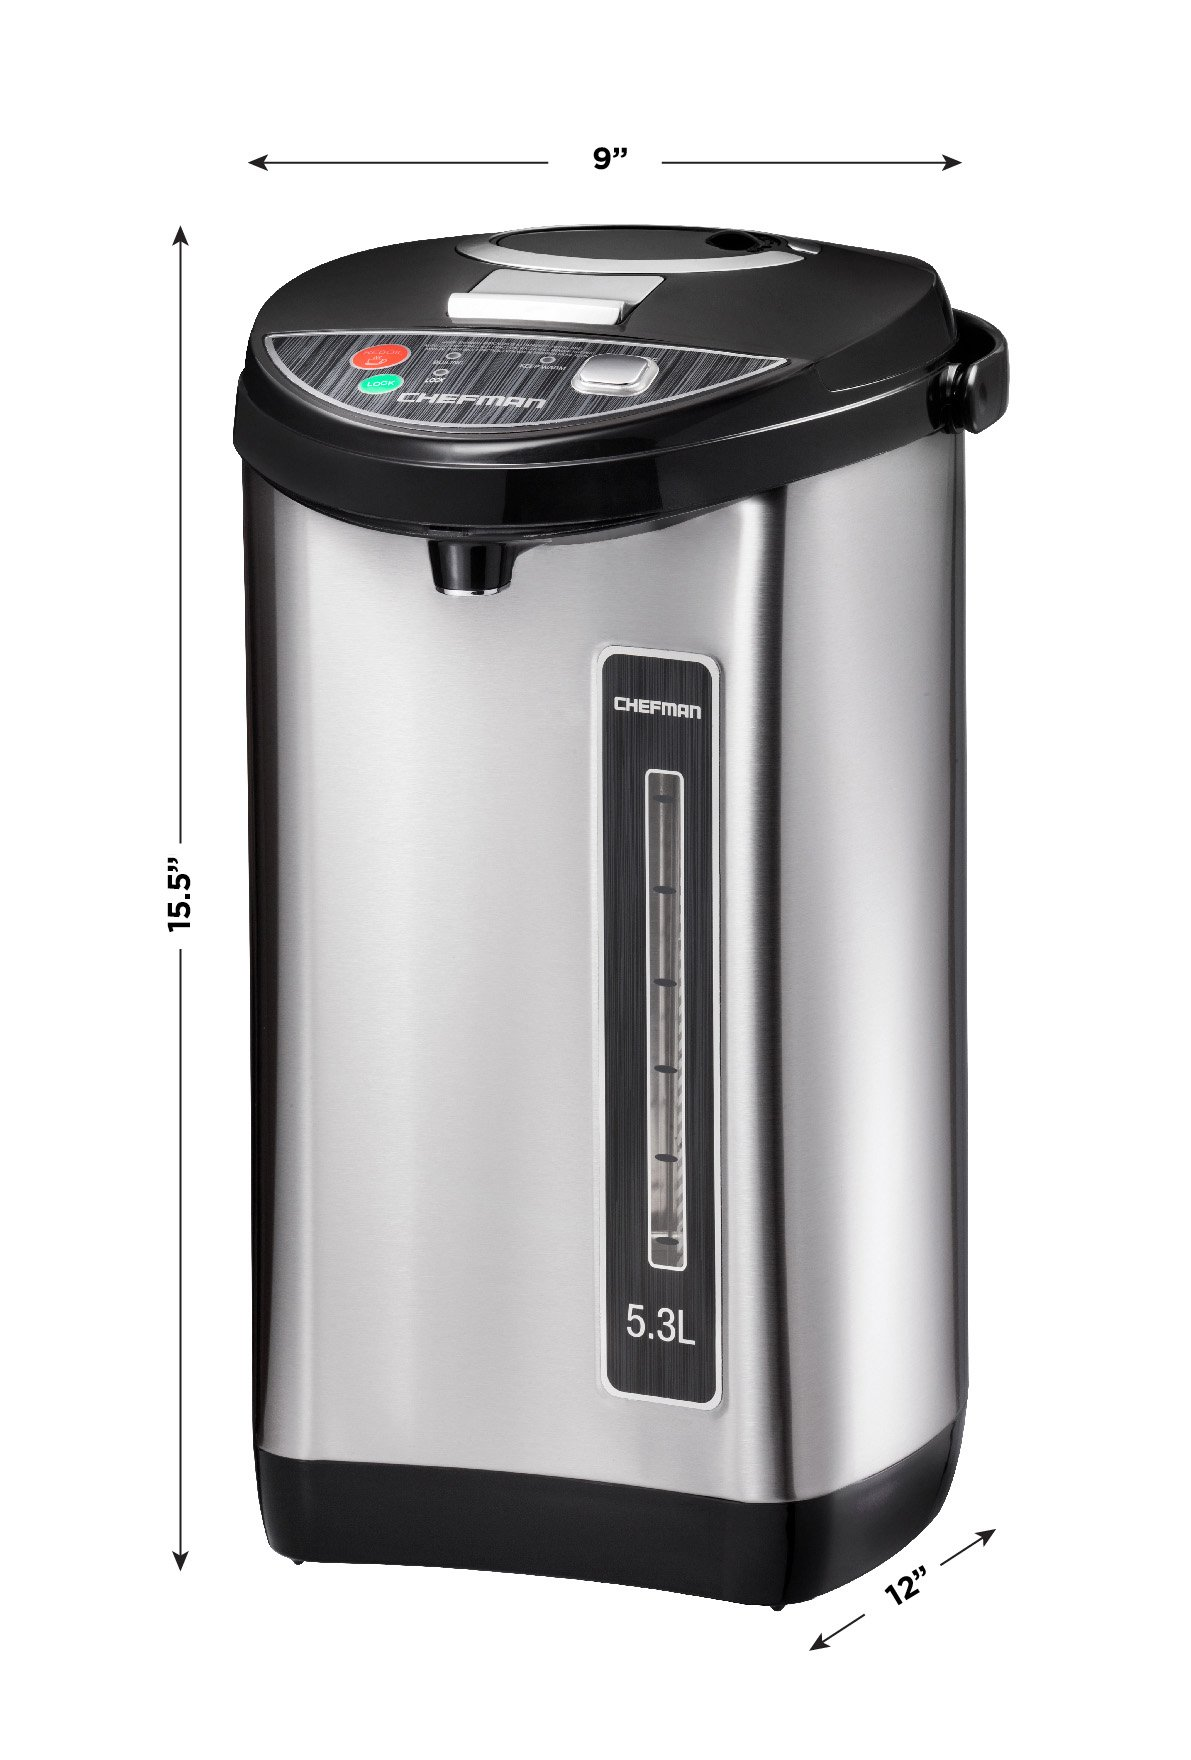 Chefman Instant Electric Hot Water Pot, Safety Lock To Prevent Spillage, 3 Dispense Buttons, Auto Shutoff, Easy View Water Level, Hot Water Urn, 700W & 120V, 5.3 Liters, Stainless Steel by Chefman (Image #5)